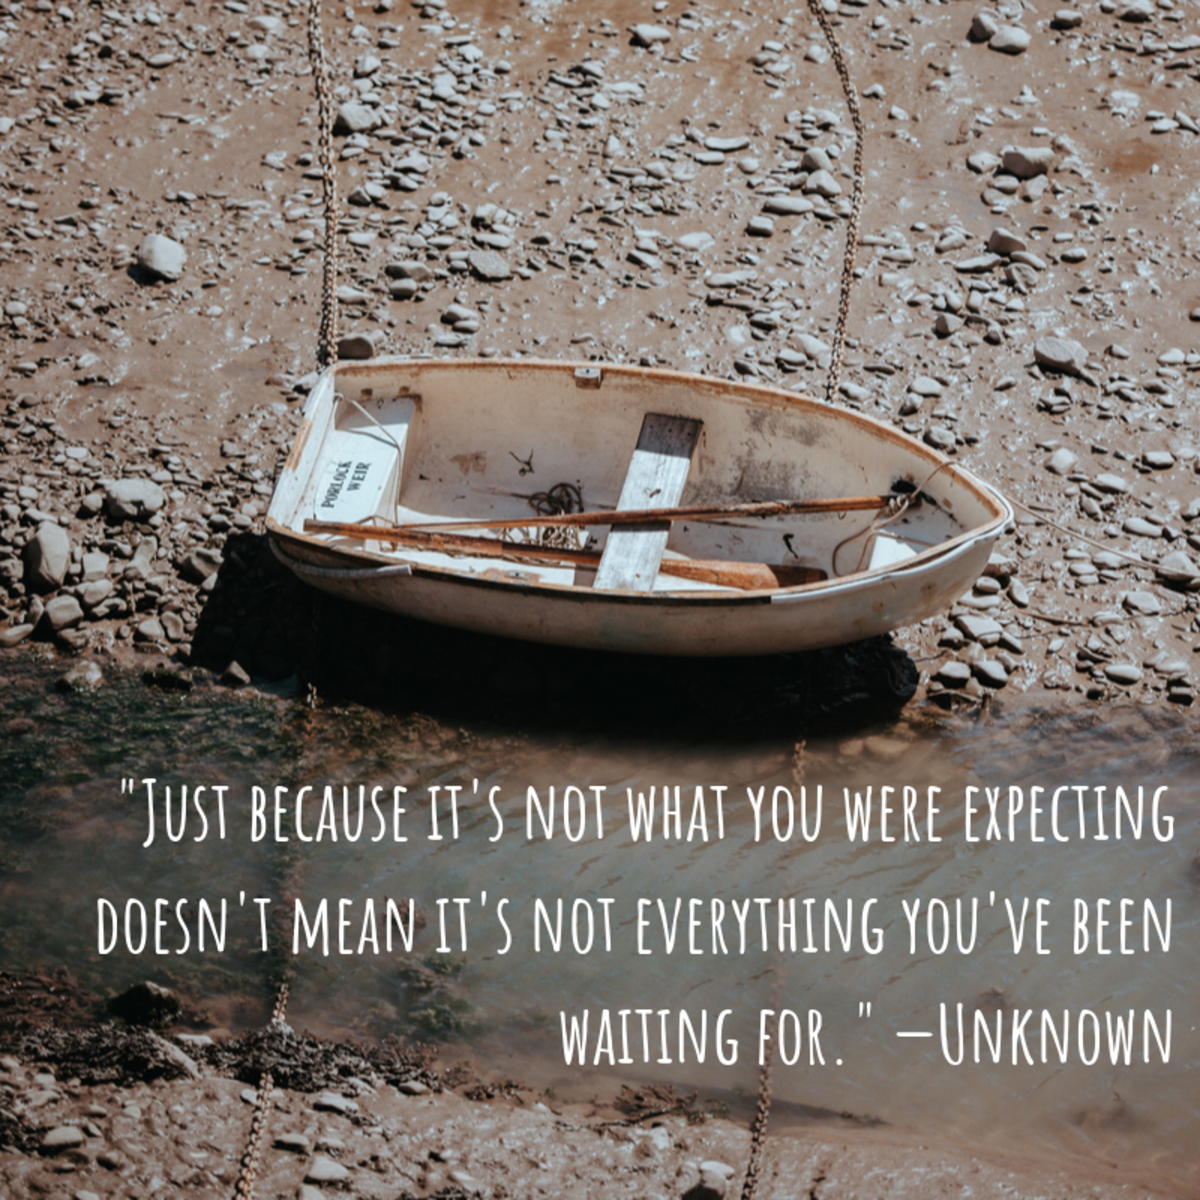 """Just because it's not what you were expecting doesn't mean it's not everything you've been waiting for."" —Unknown"